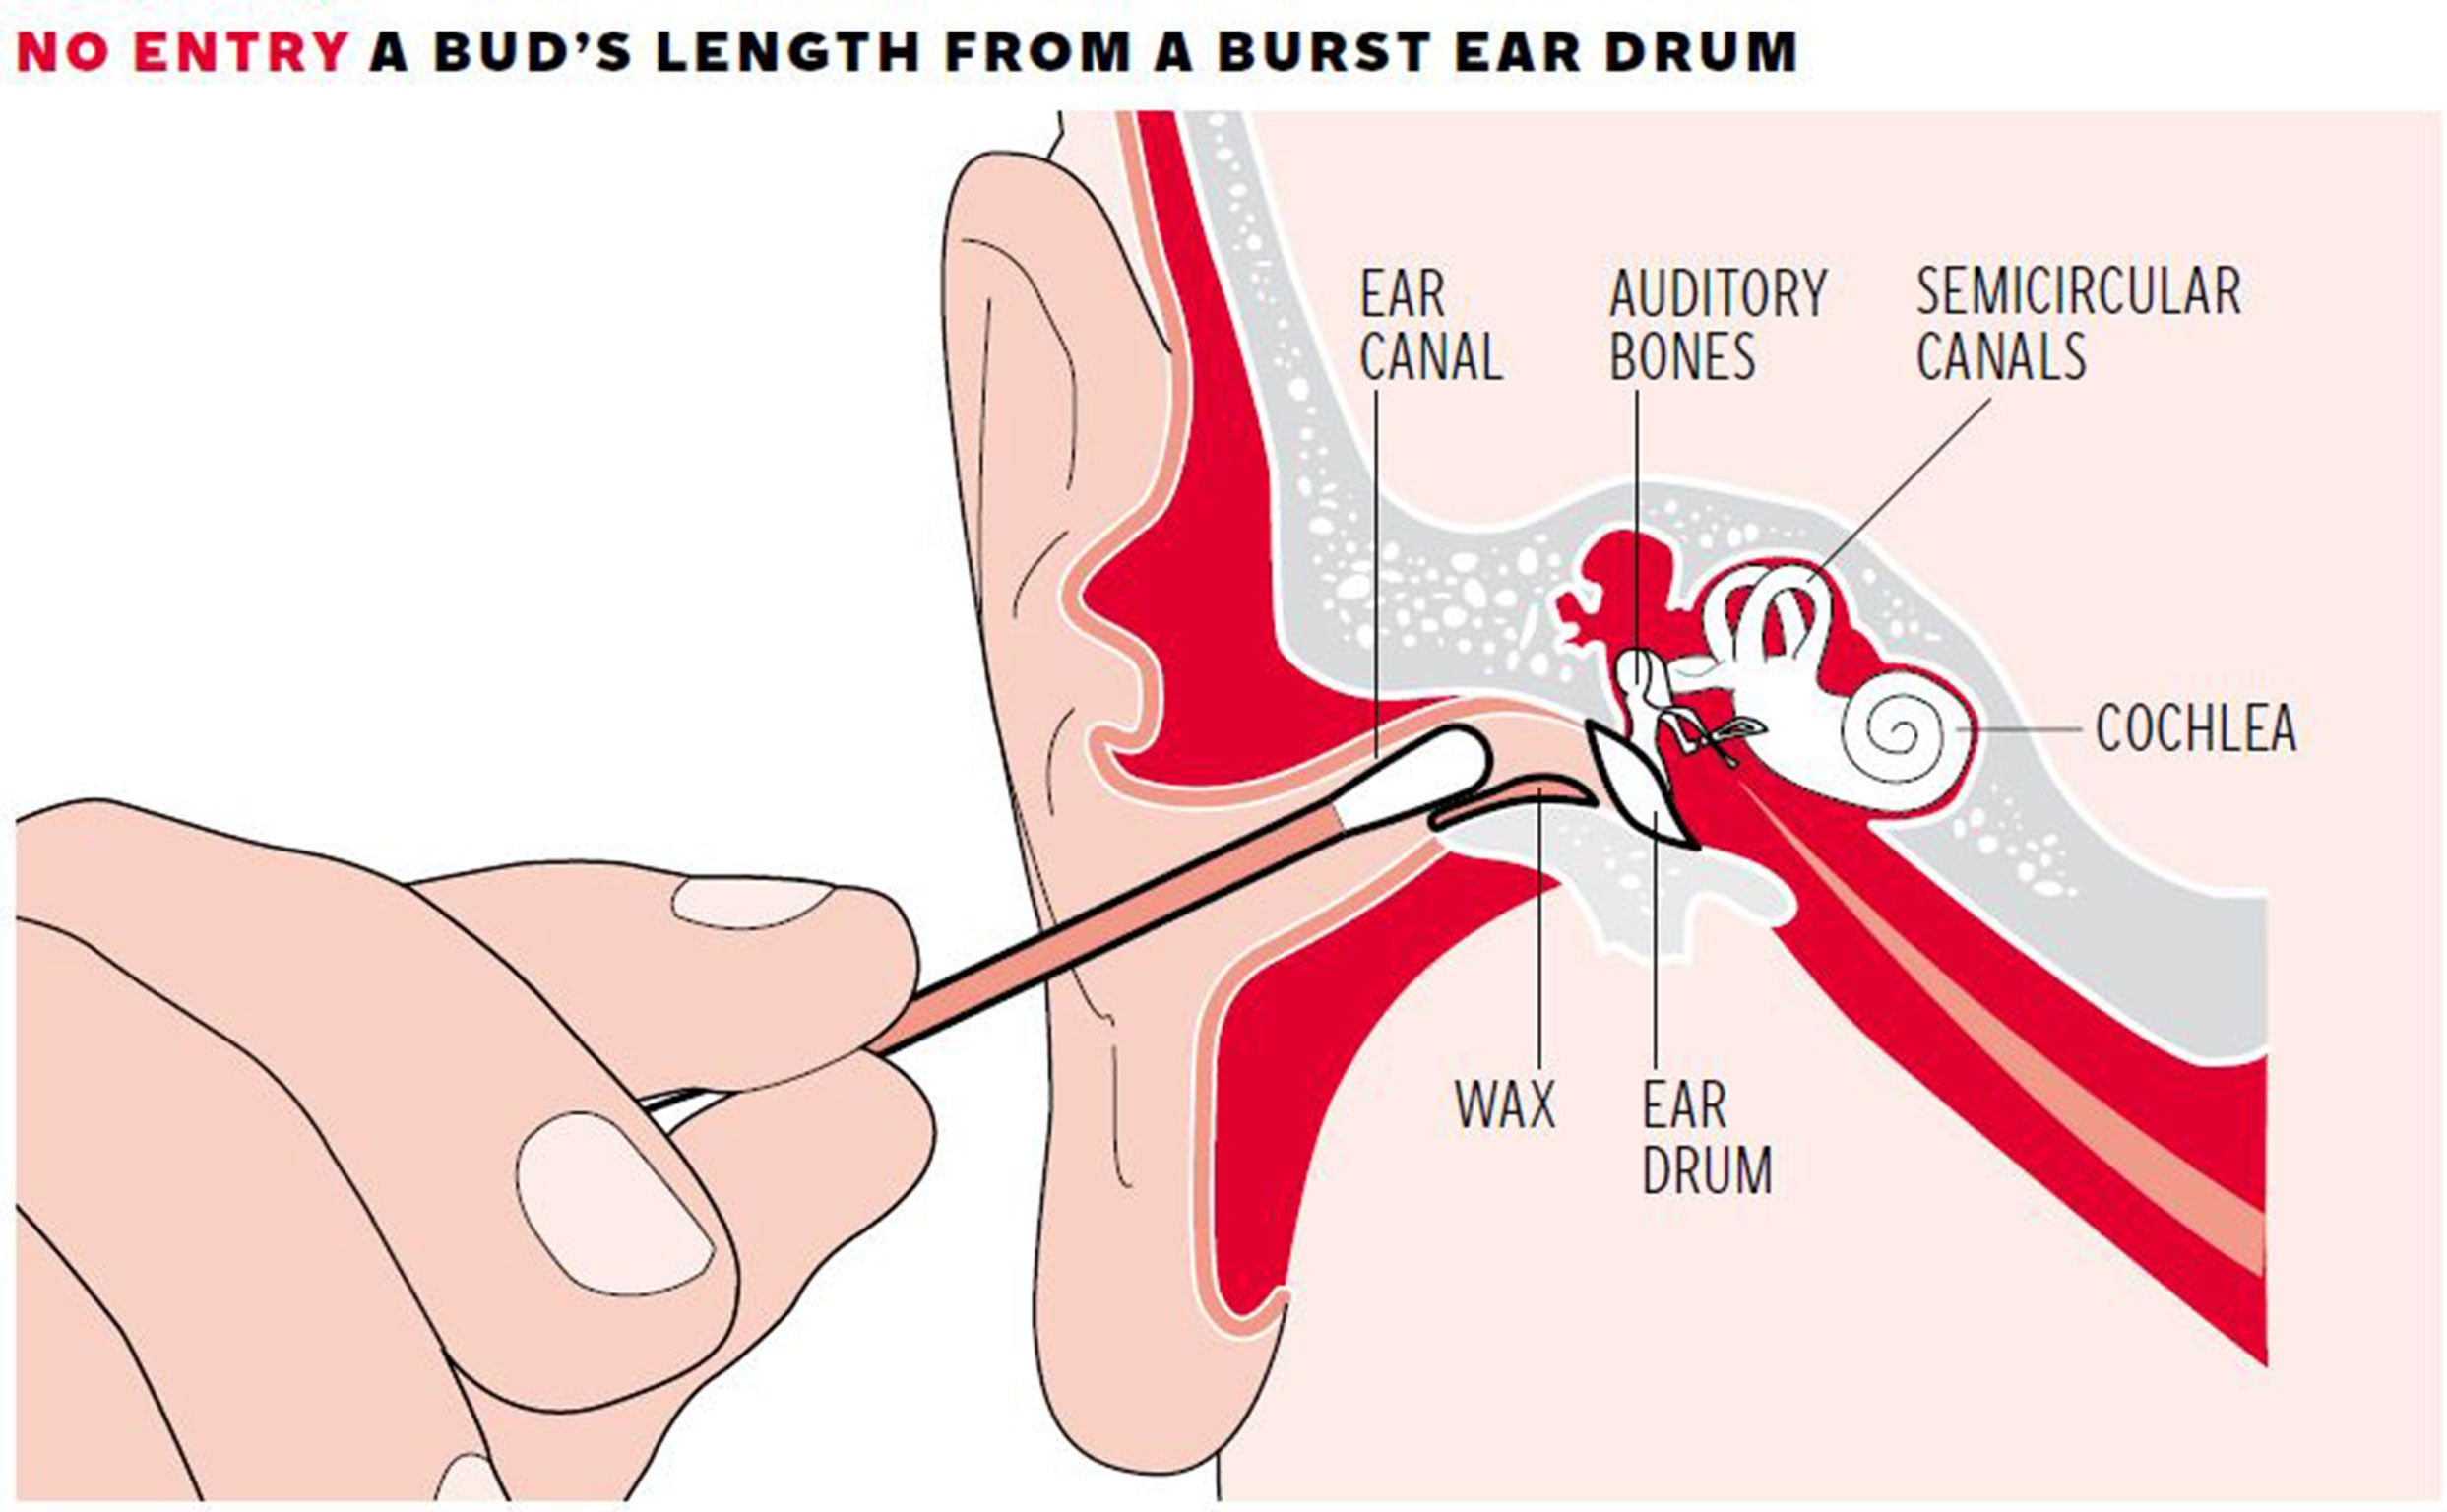 Cotton Bud In Ear Why Can T We Resist The Temptation